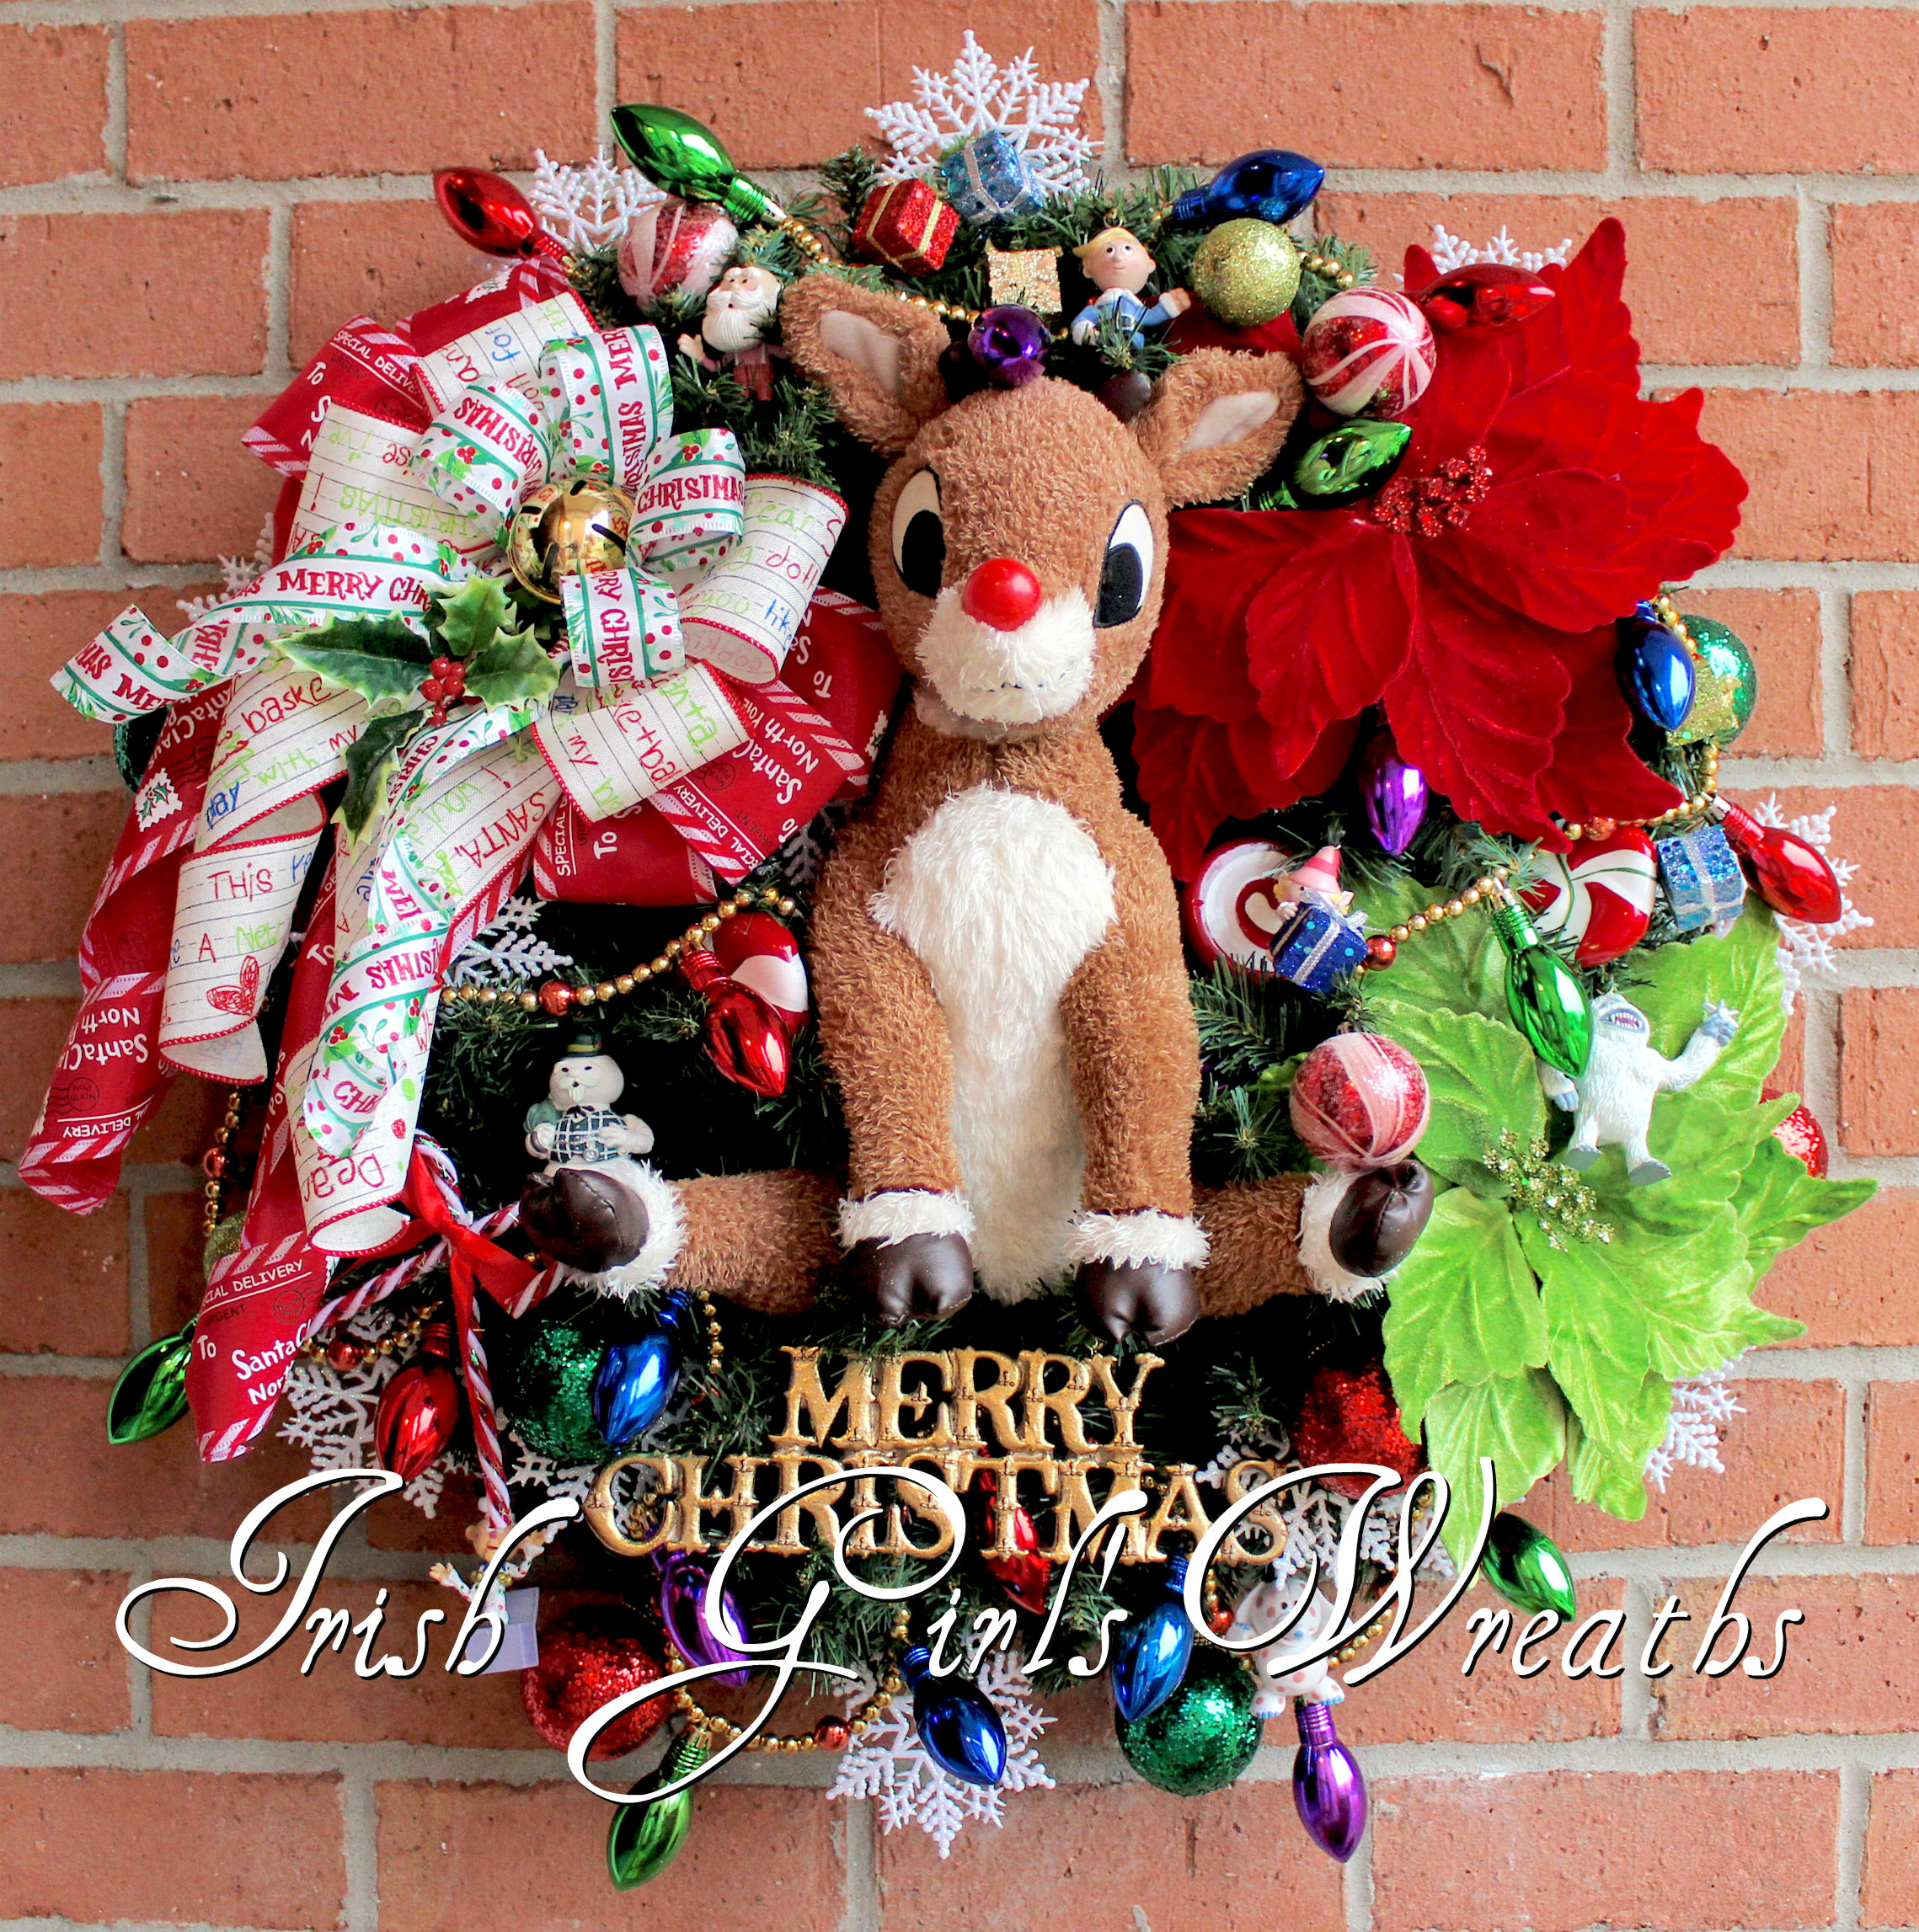 Rudolph the Red-Nosed Reindeer & Island of Misfit Toys Christmas Wreath